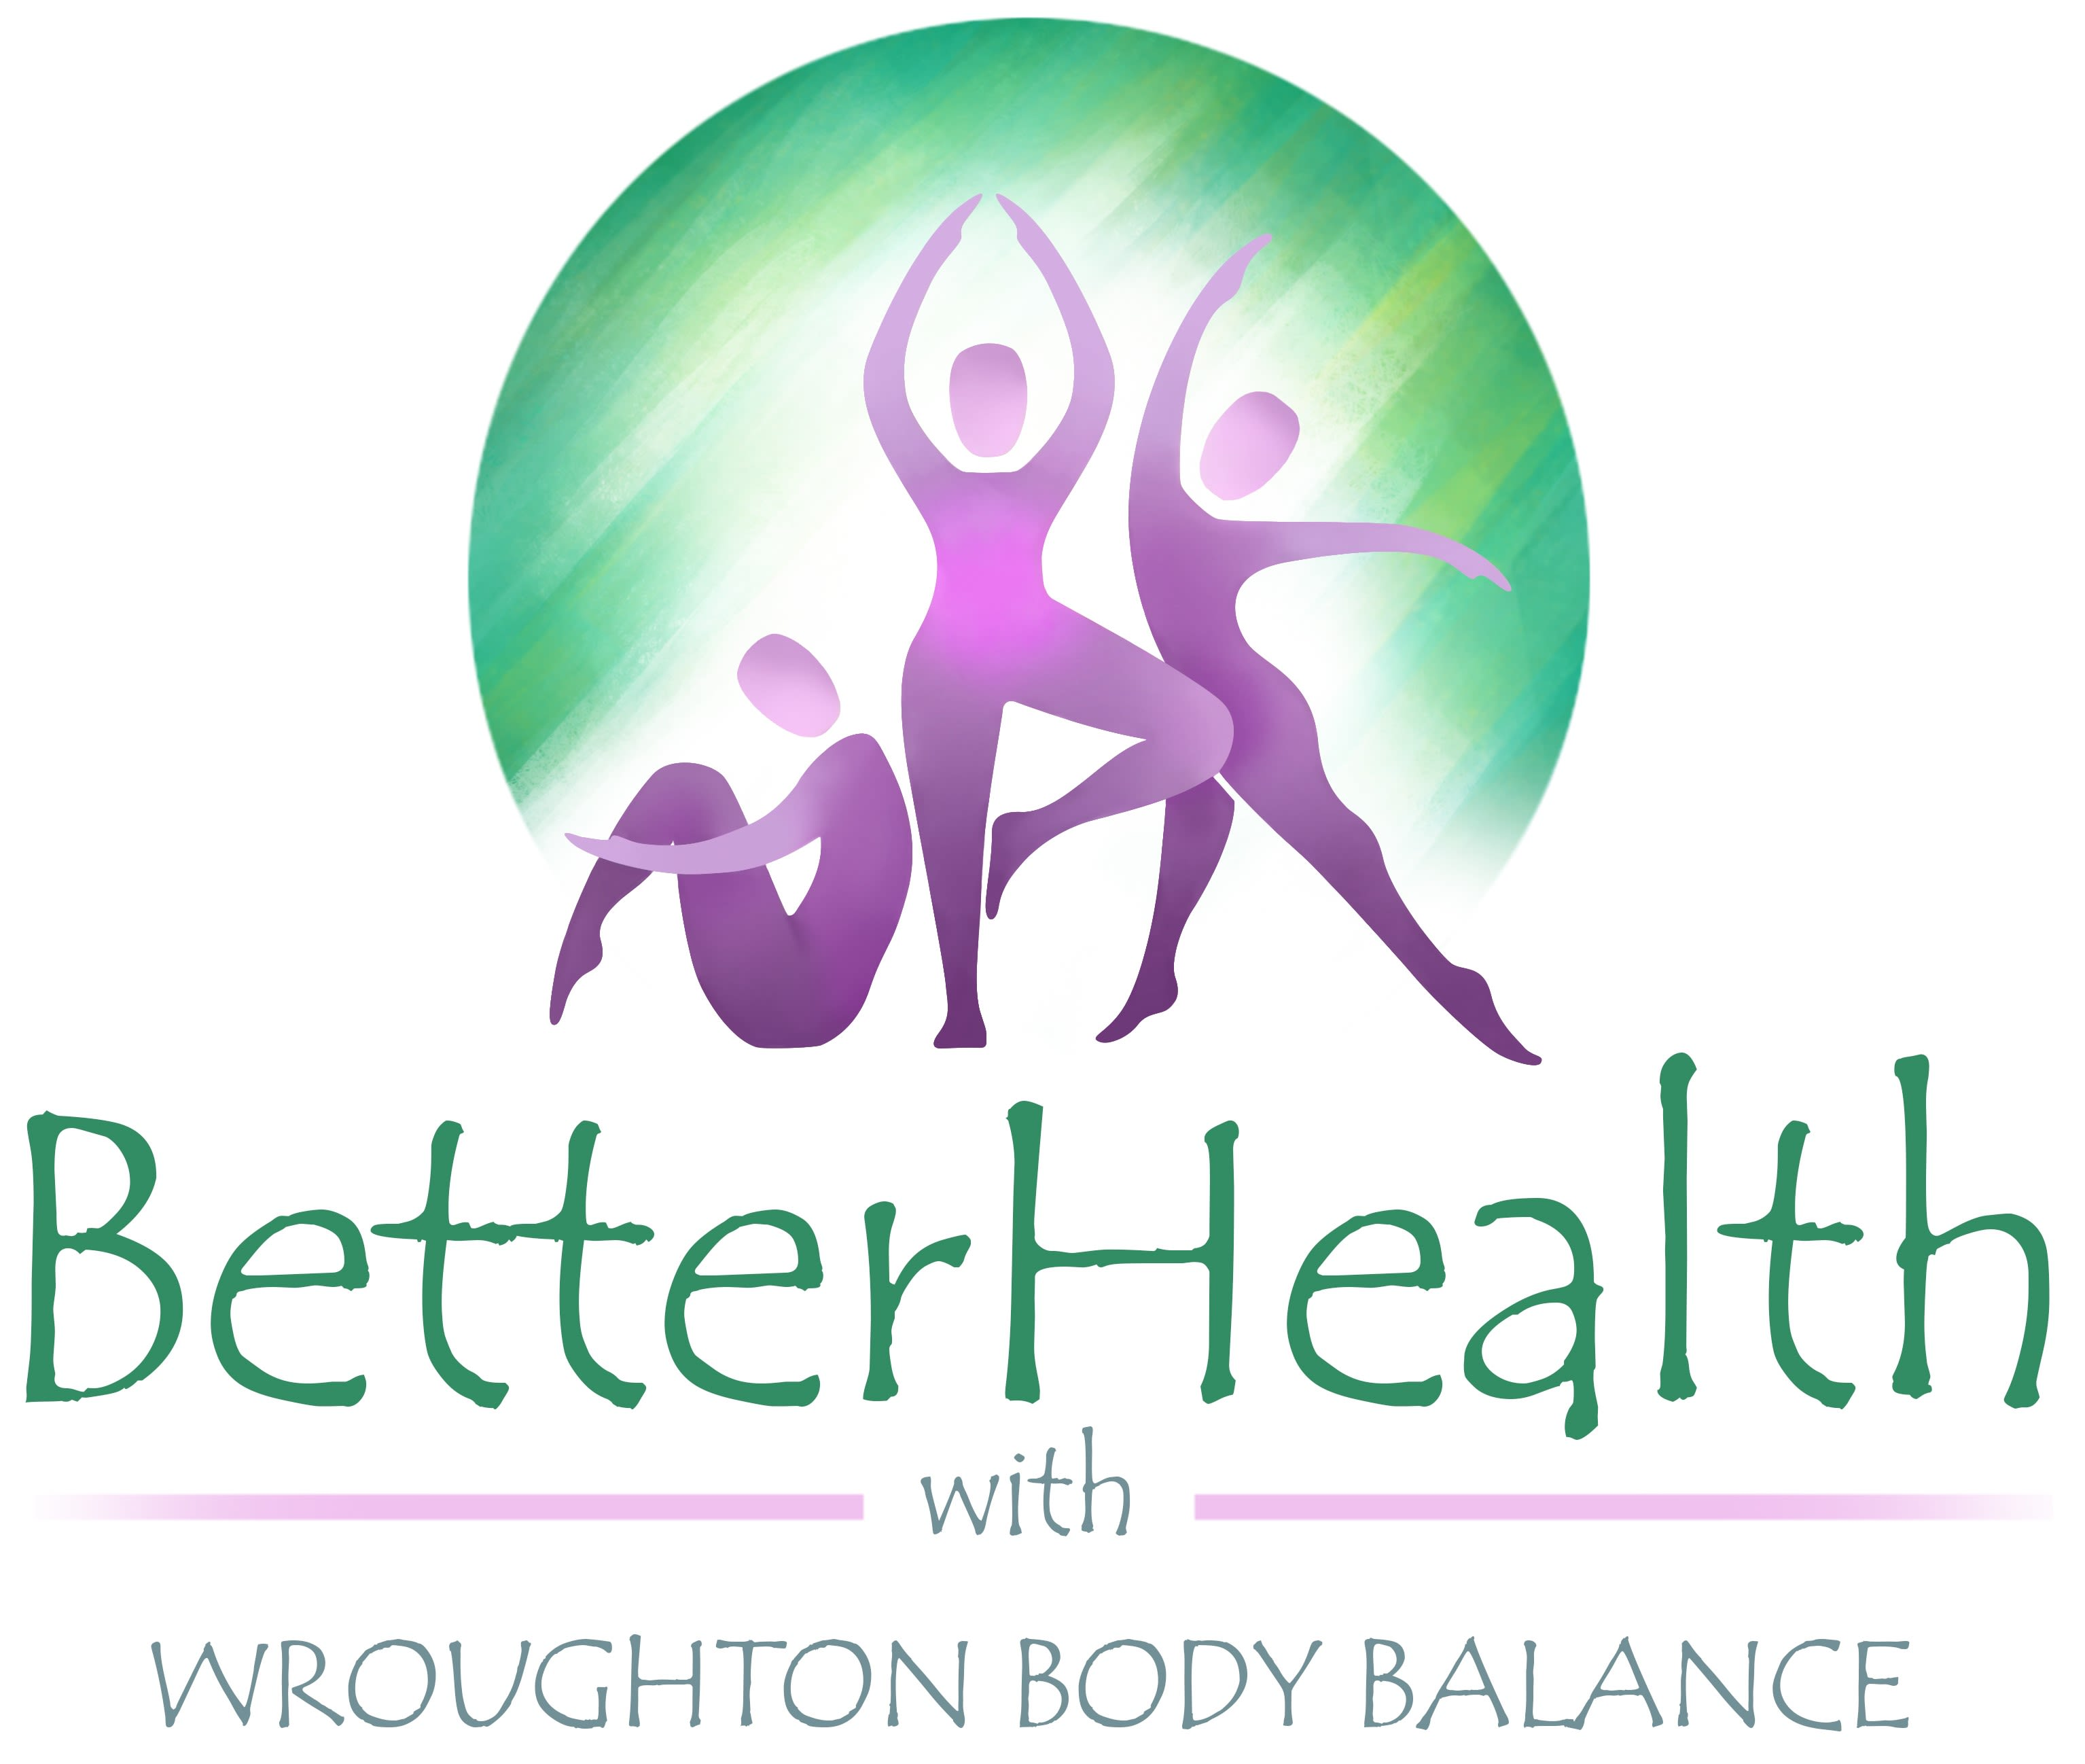 Better Health with Wroughton Body Balance